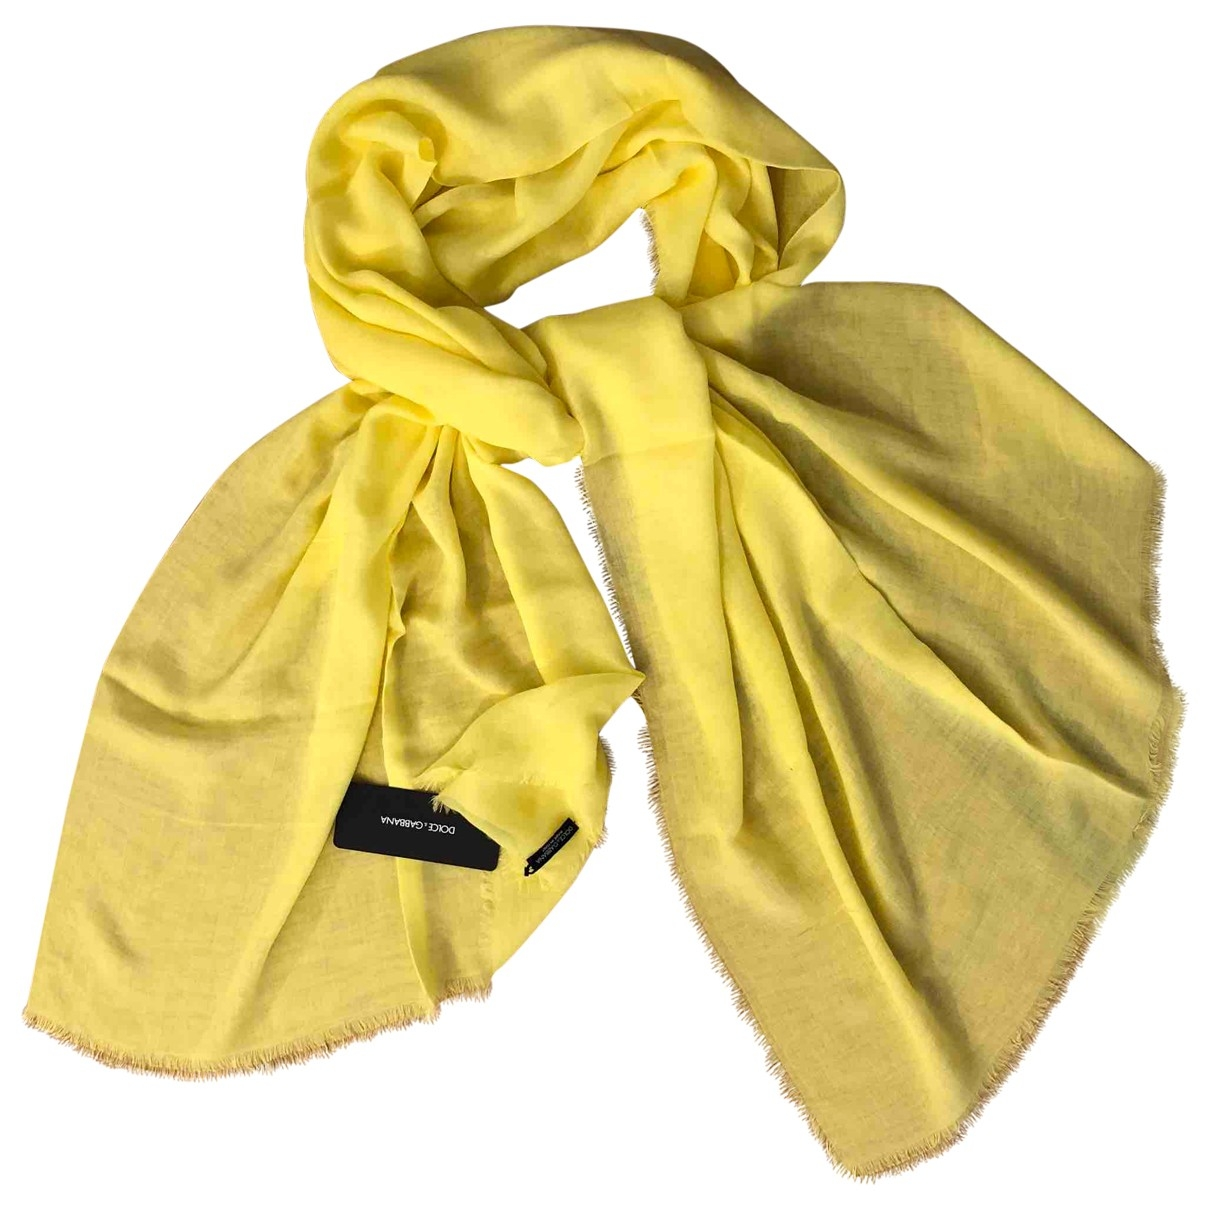 Dolce & Gabbana \N Yellow Cashmere scarf for Women \N